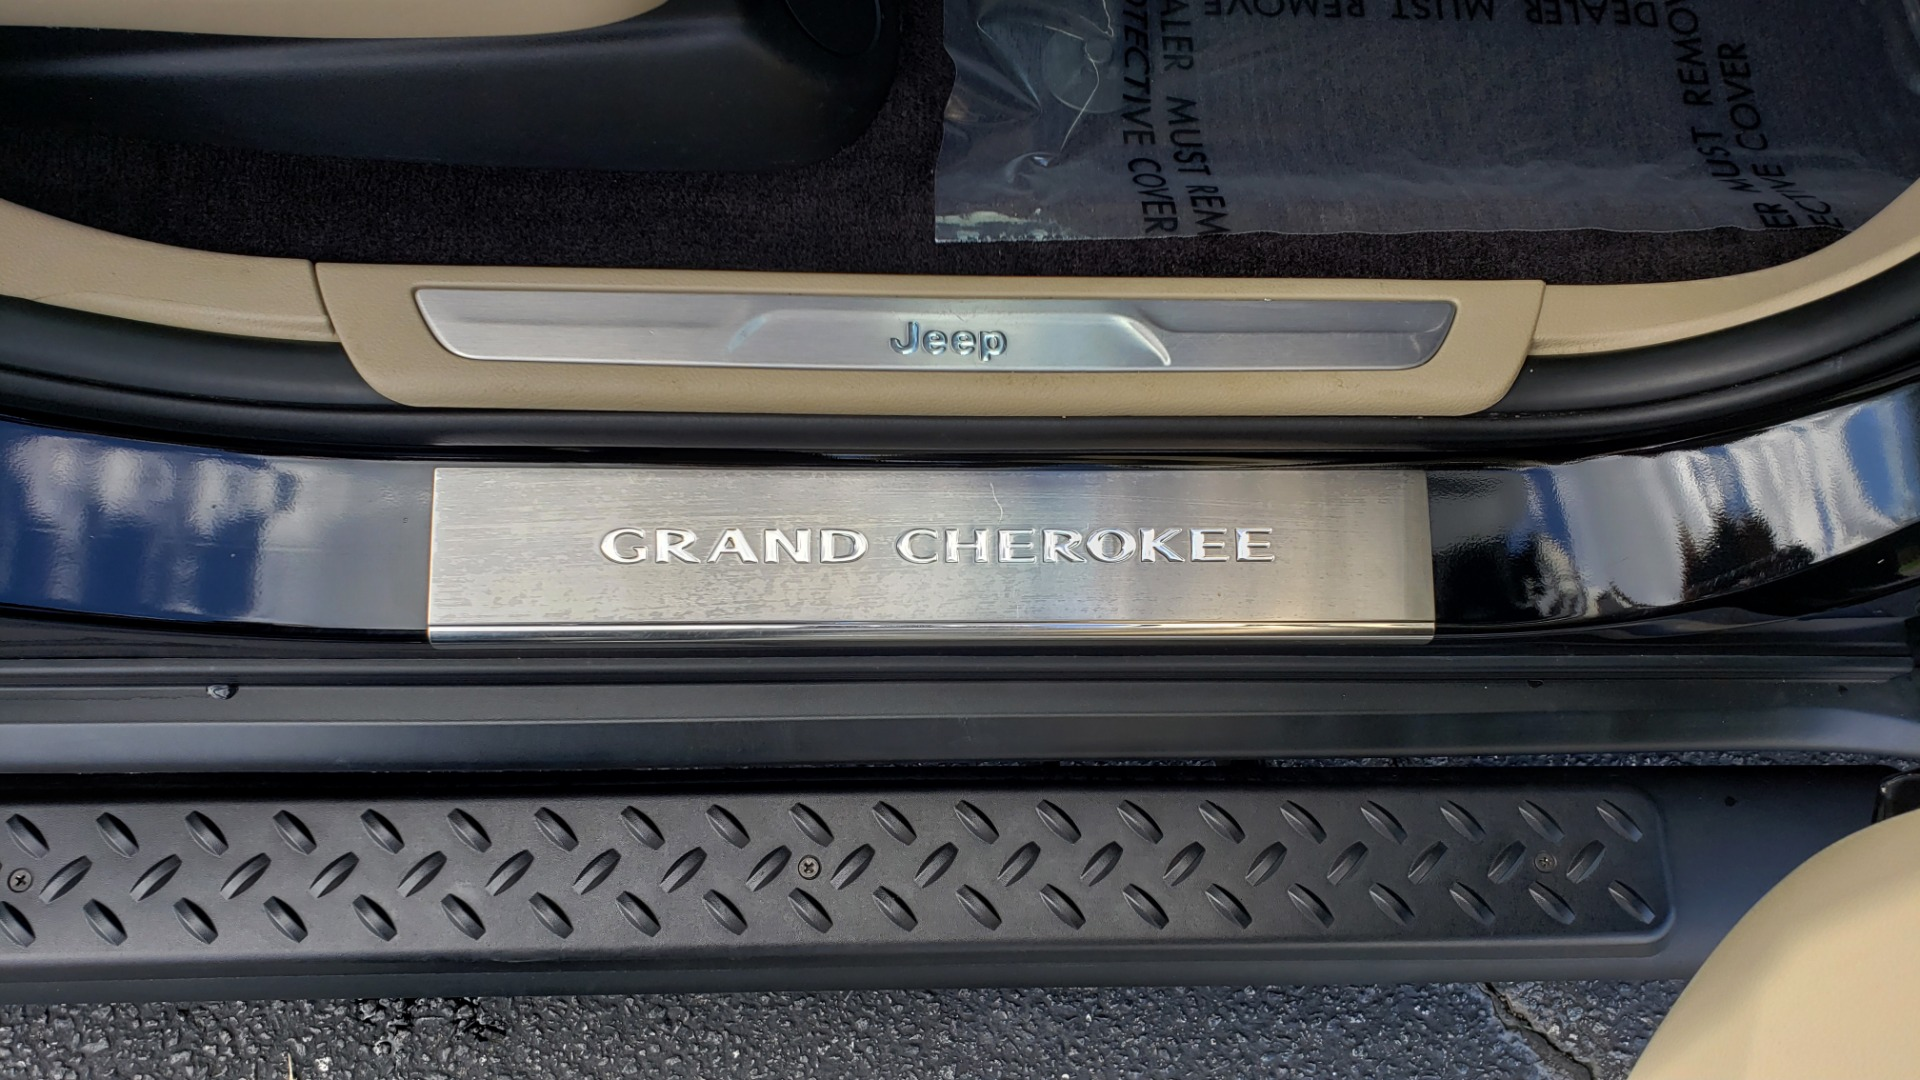 Used 2018 Jeep GRAND CHEROKEE LIMITED 4X4 / NAV / SUNROOF / HTD STS / REARVIEW for sale Sold at Formula Imports in Charlotte NC 28227 71